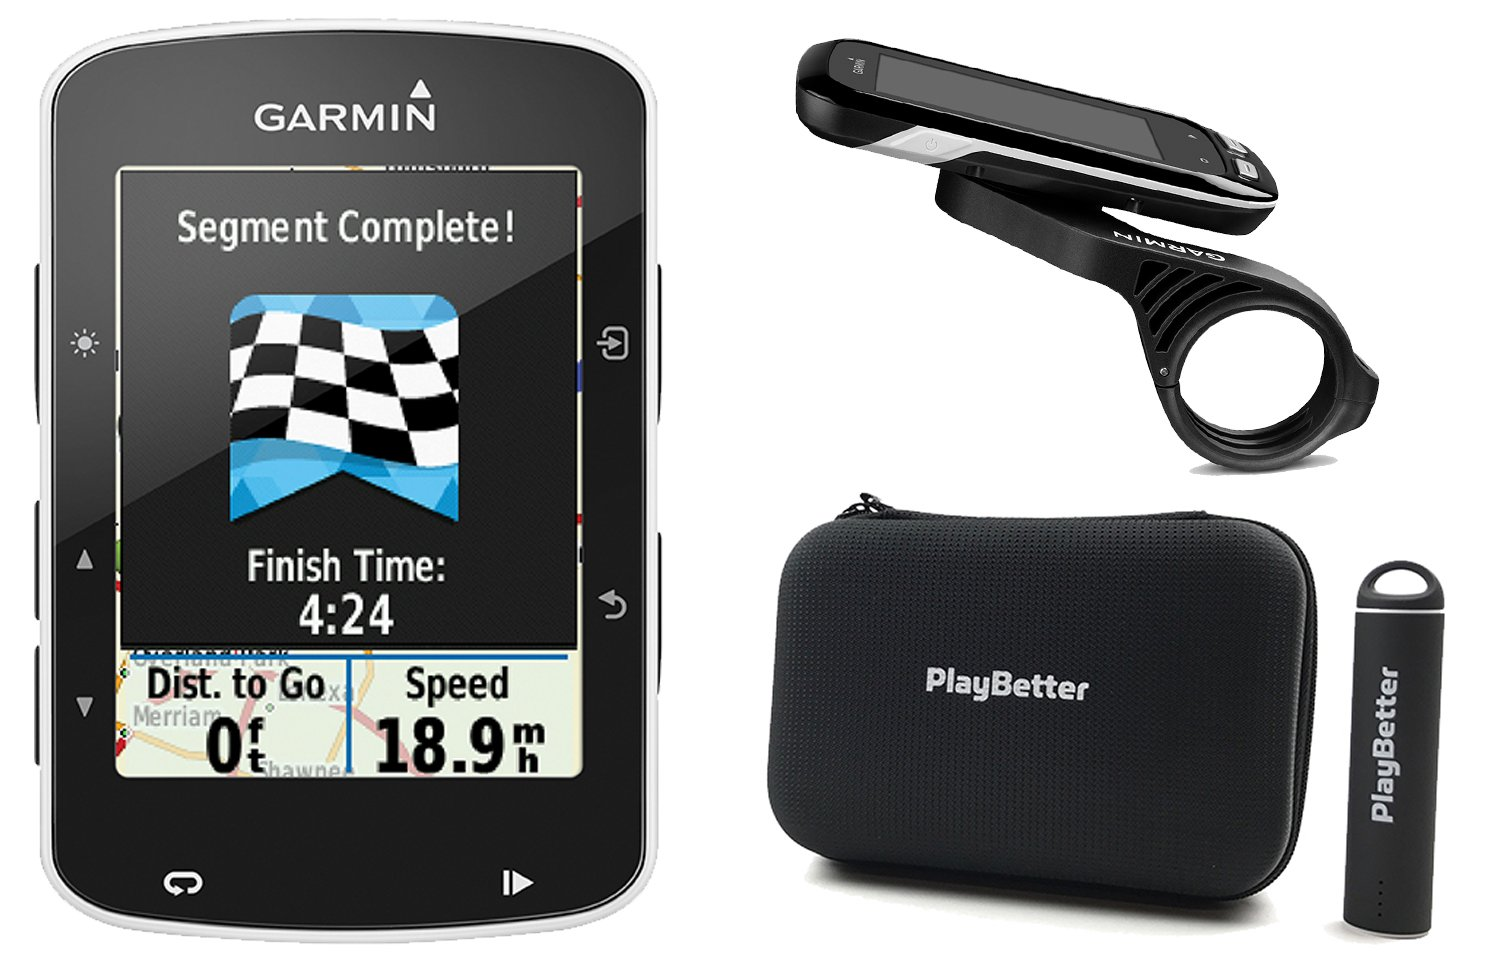 Garmin Edge 520 with PlayBetter Portable USB Charger, Hard Carrying Case, Bike Mounts & USB Cable POWER BUNDLE | High-Res Color Display | GPS Bike Computer by PlayBetter (Image #1)